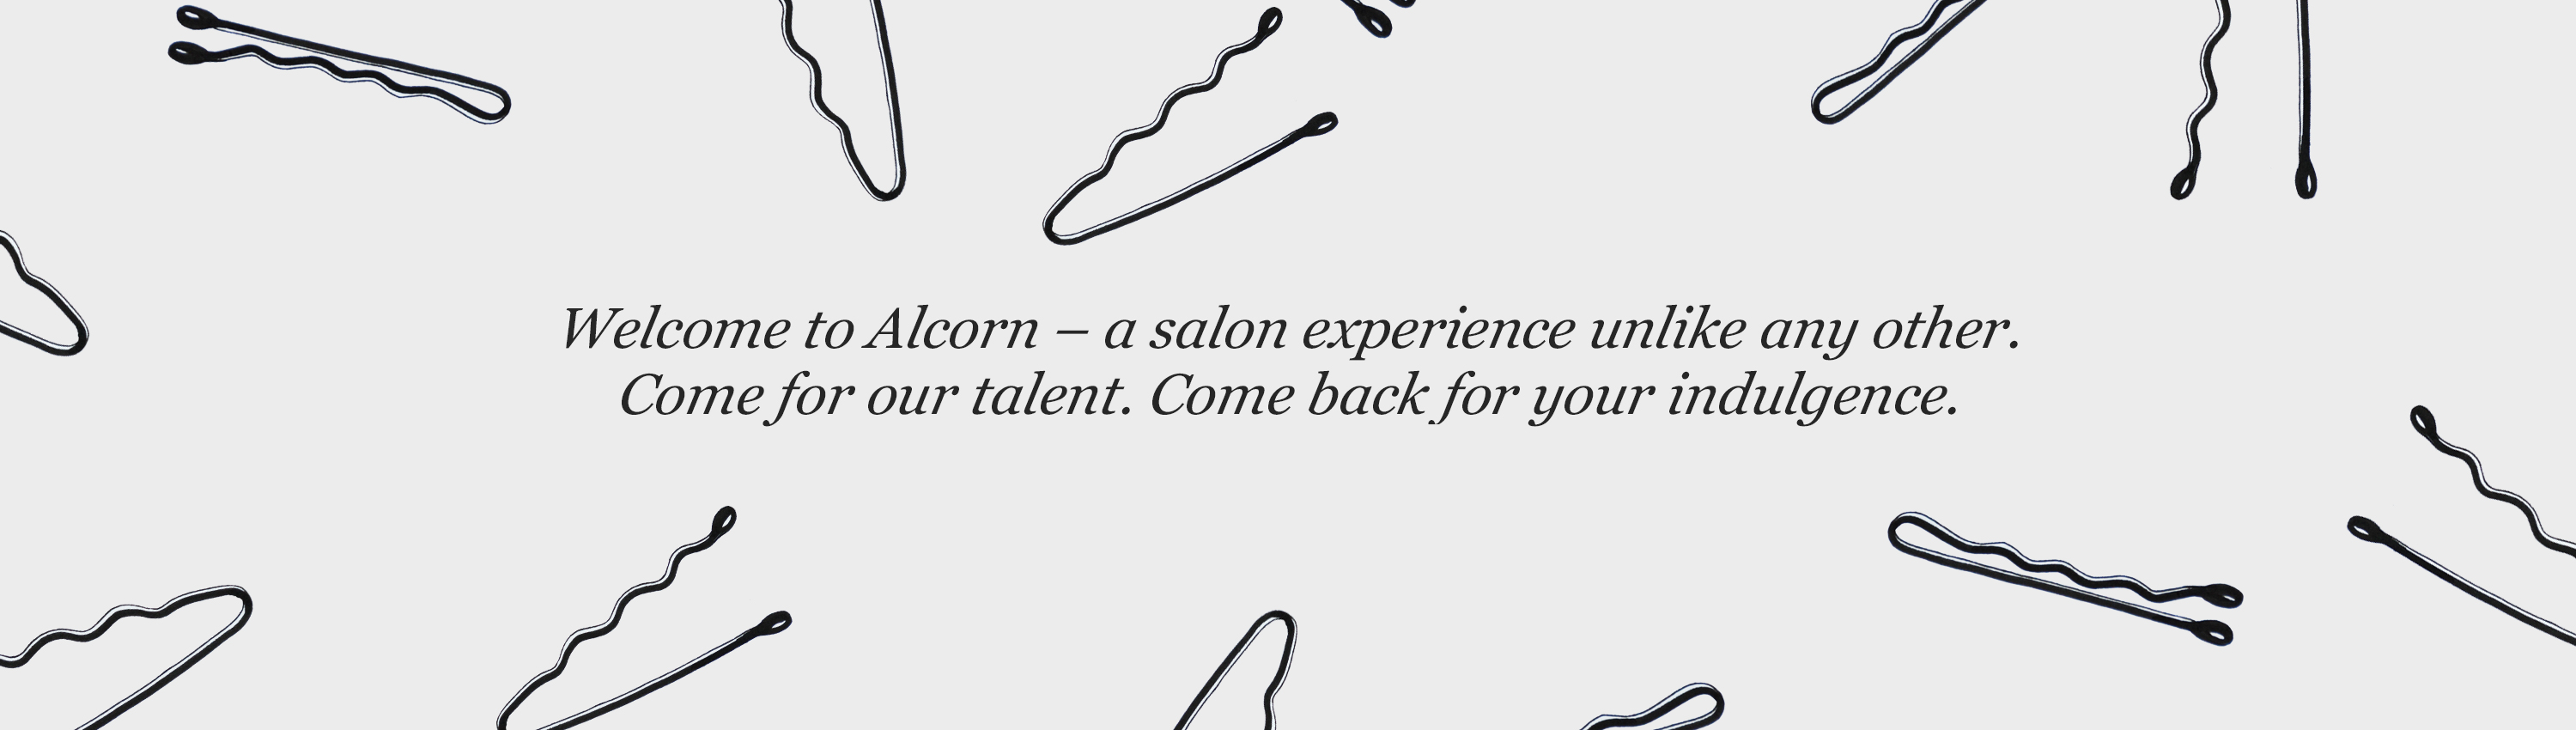 Welcome to the Alcorn - a salon experience unlike any other.